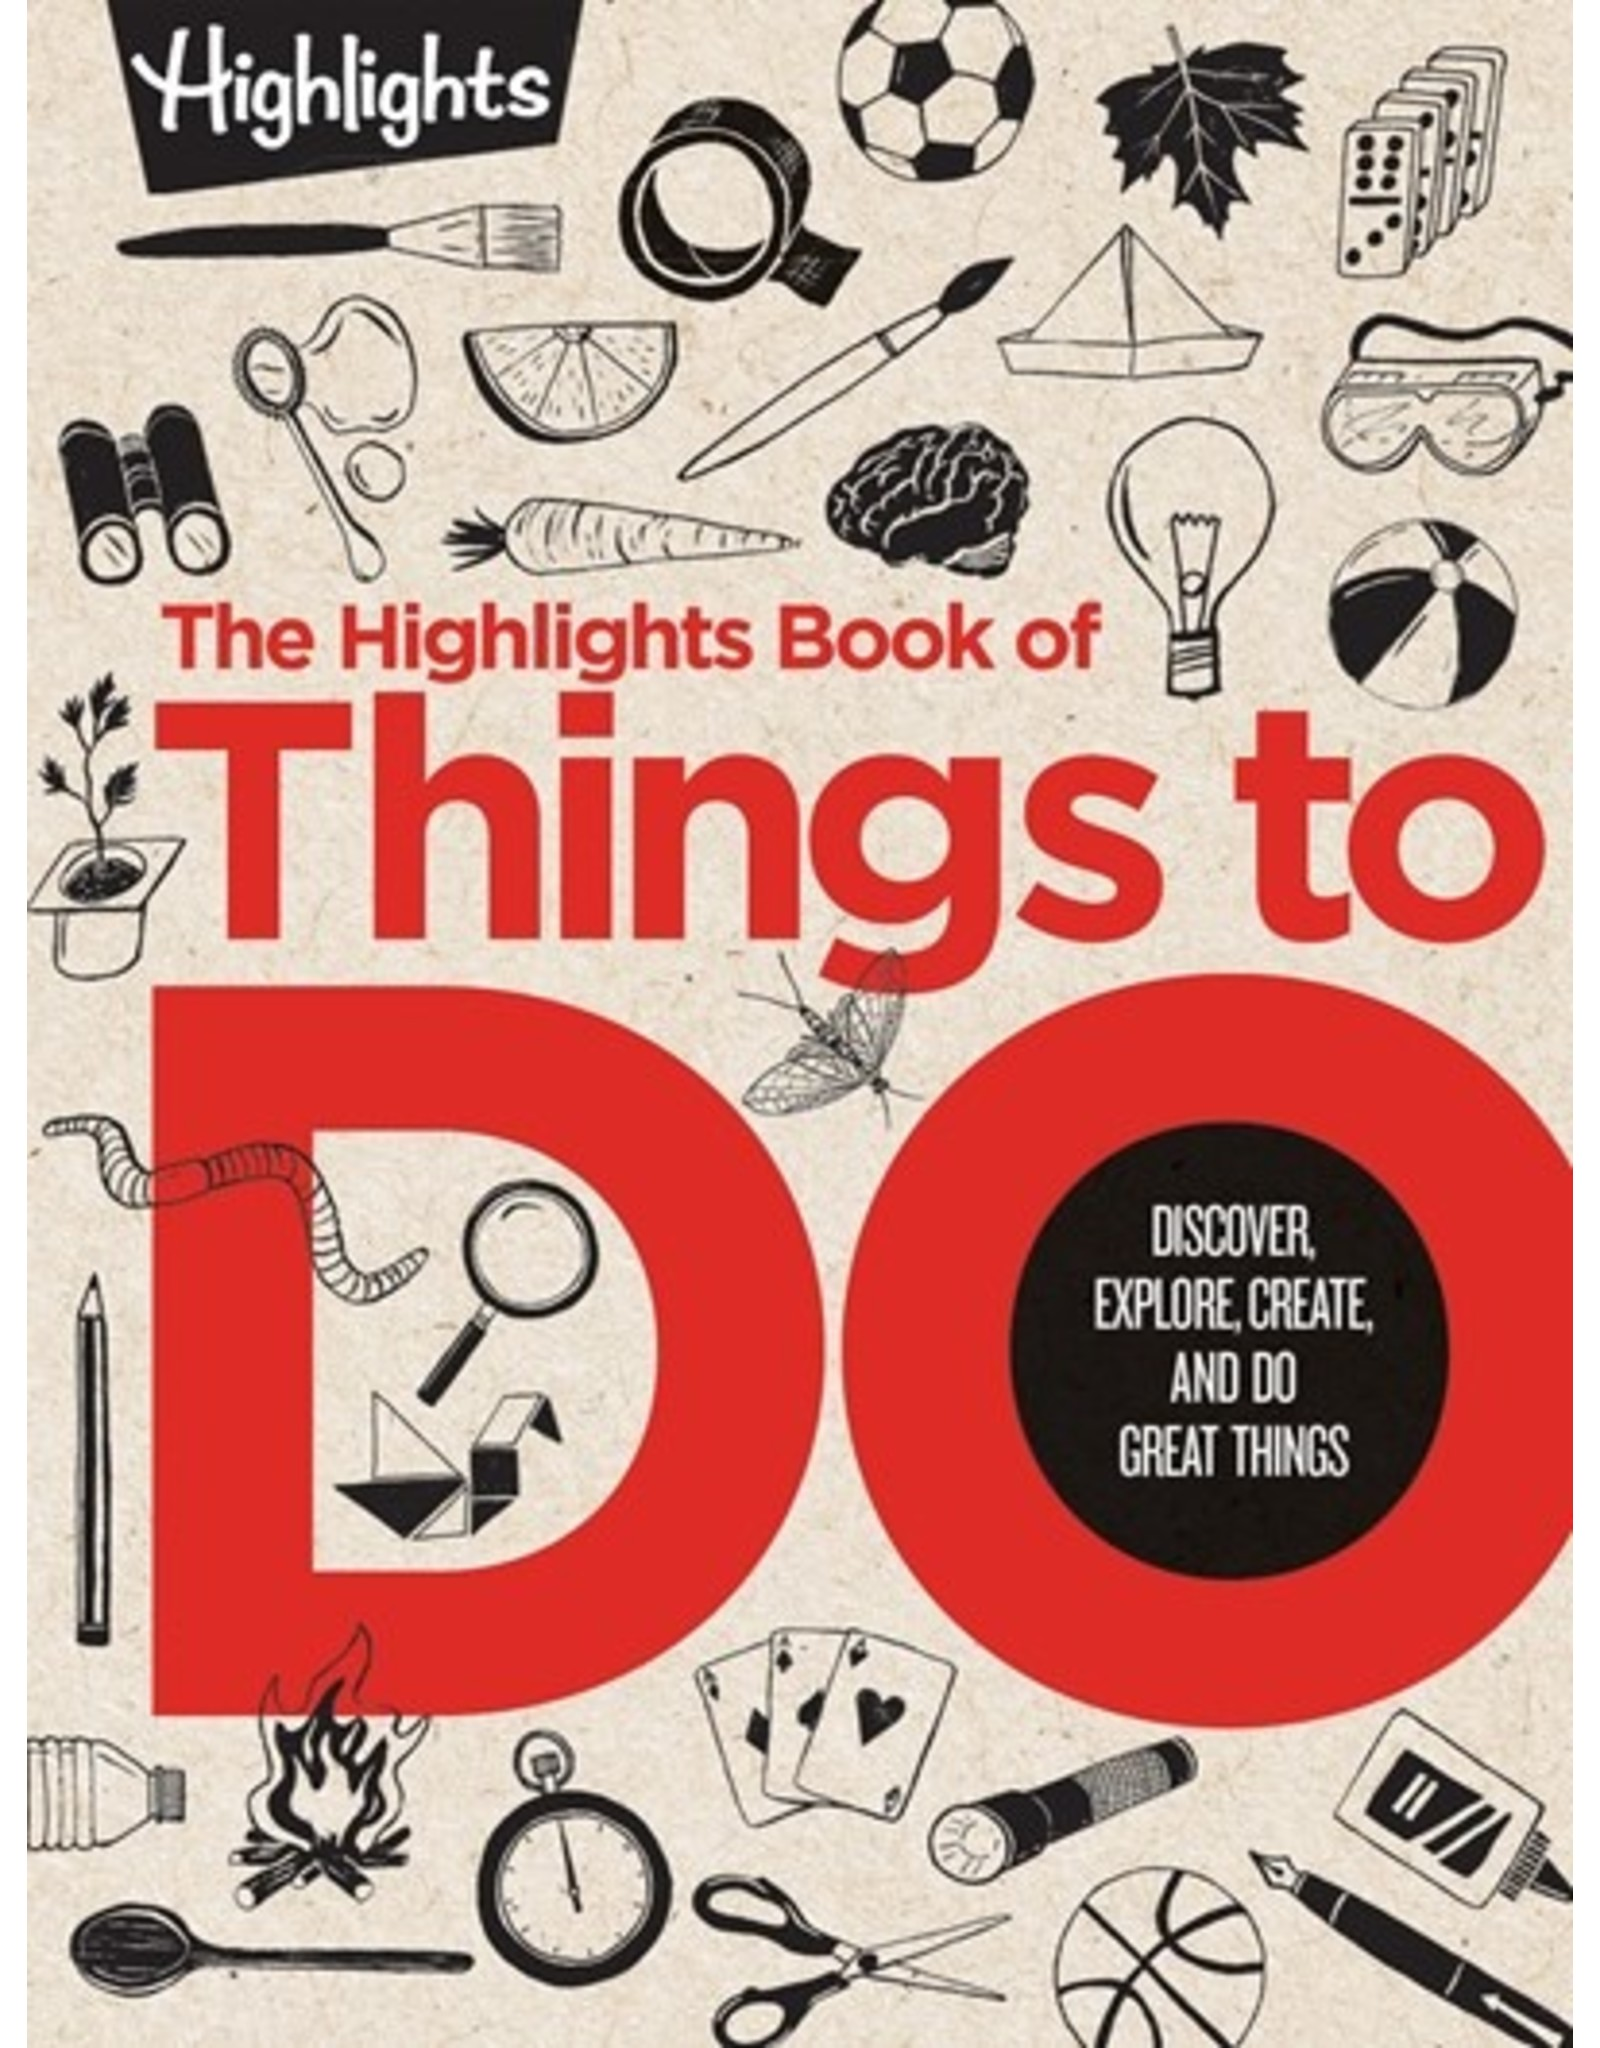 Books The Hightlight Book of Things to Do  (Holiday Catalog)